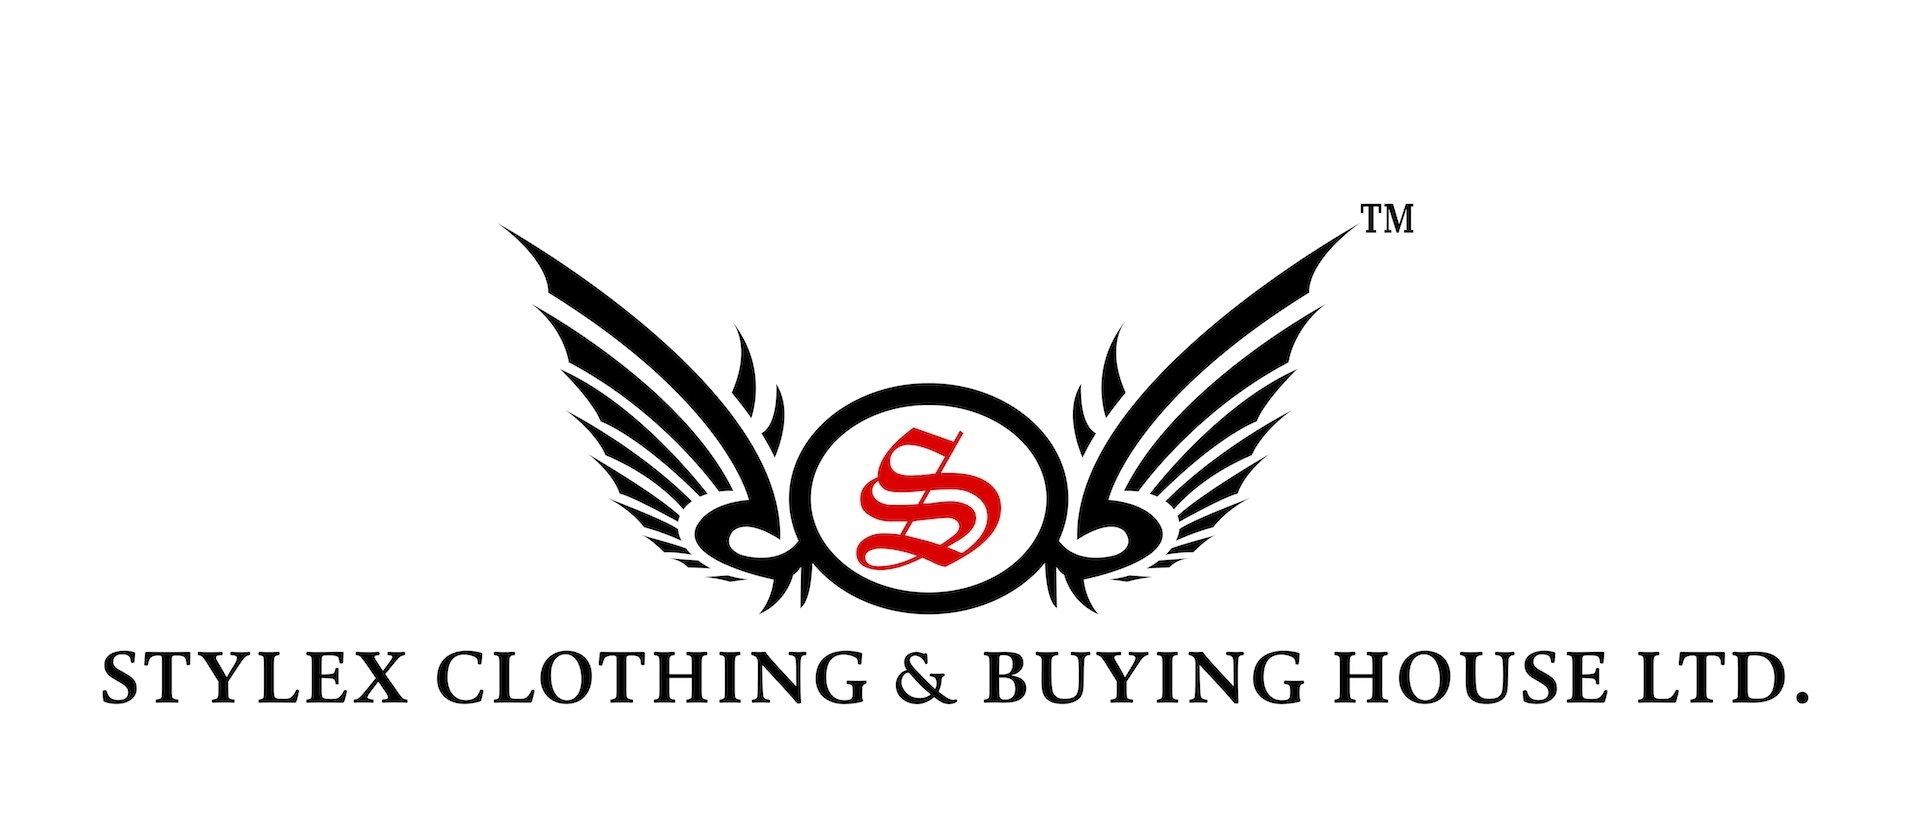 STYLEX CLOTHING AND BUYING HOUSE LTD